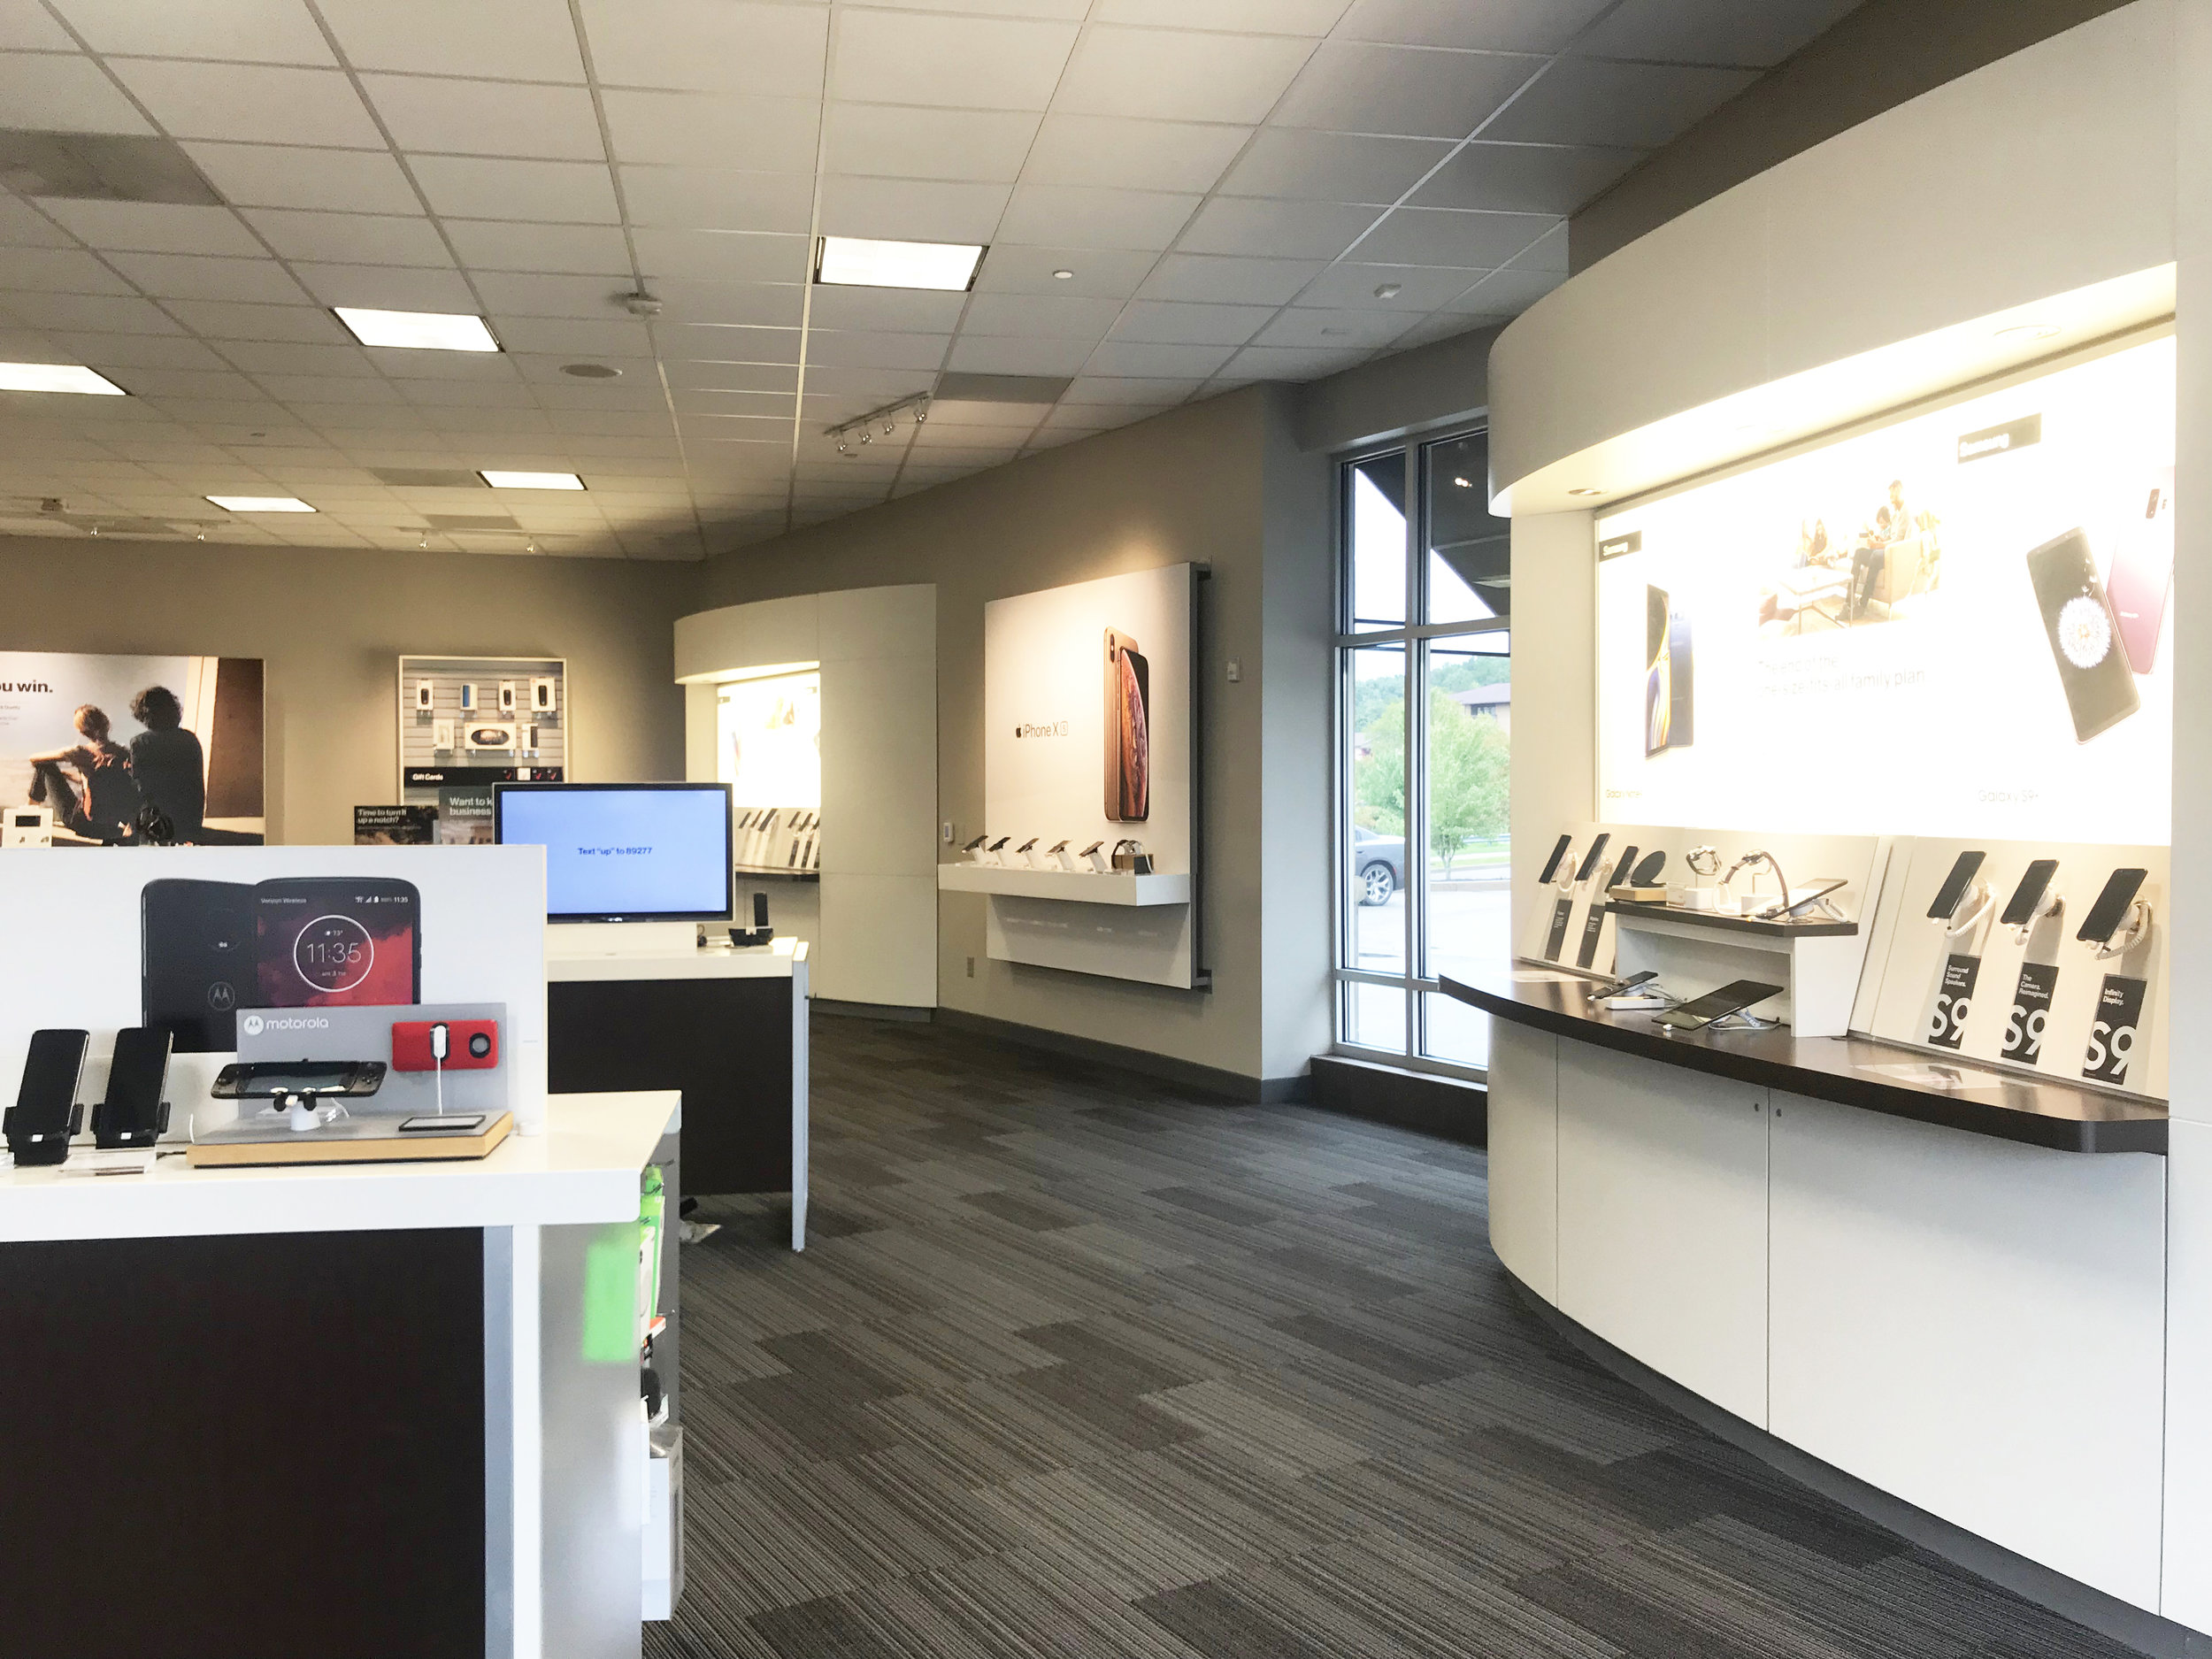 COMMUNICATIONS RETAIL STORE